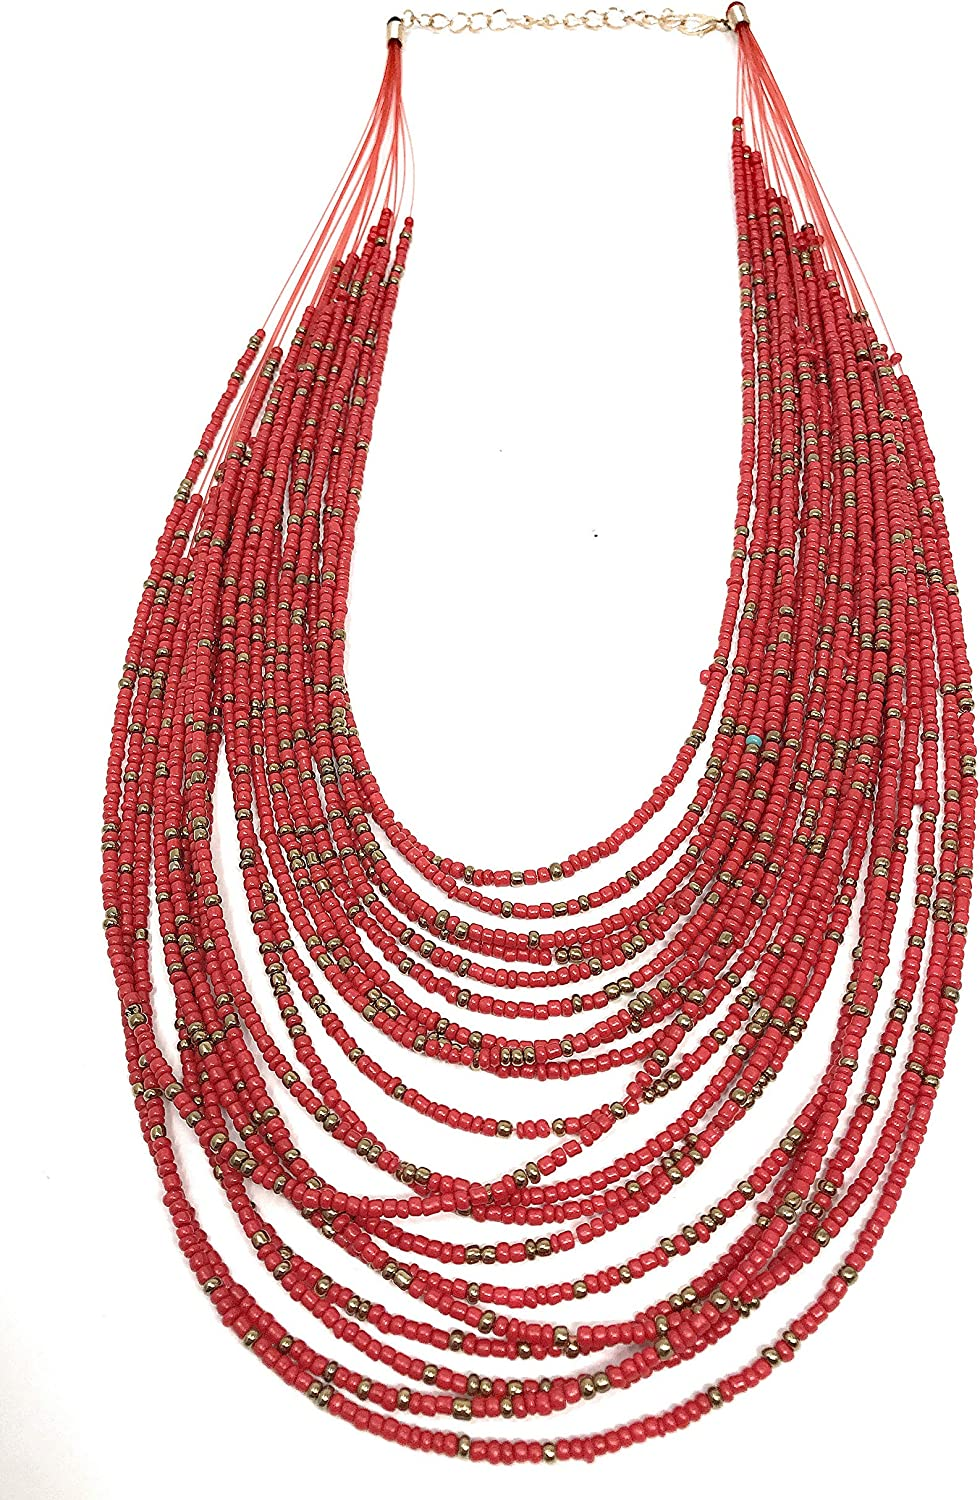 Necklace / 20 Layers Bib Statement Collar Glass Beaded Choker Necklace Fashion Jewelry For Women (Red)